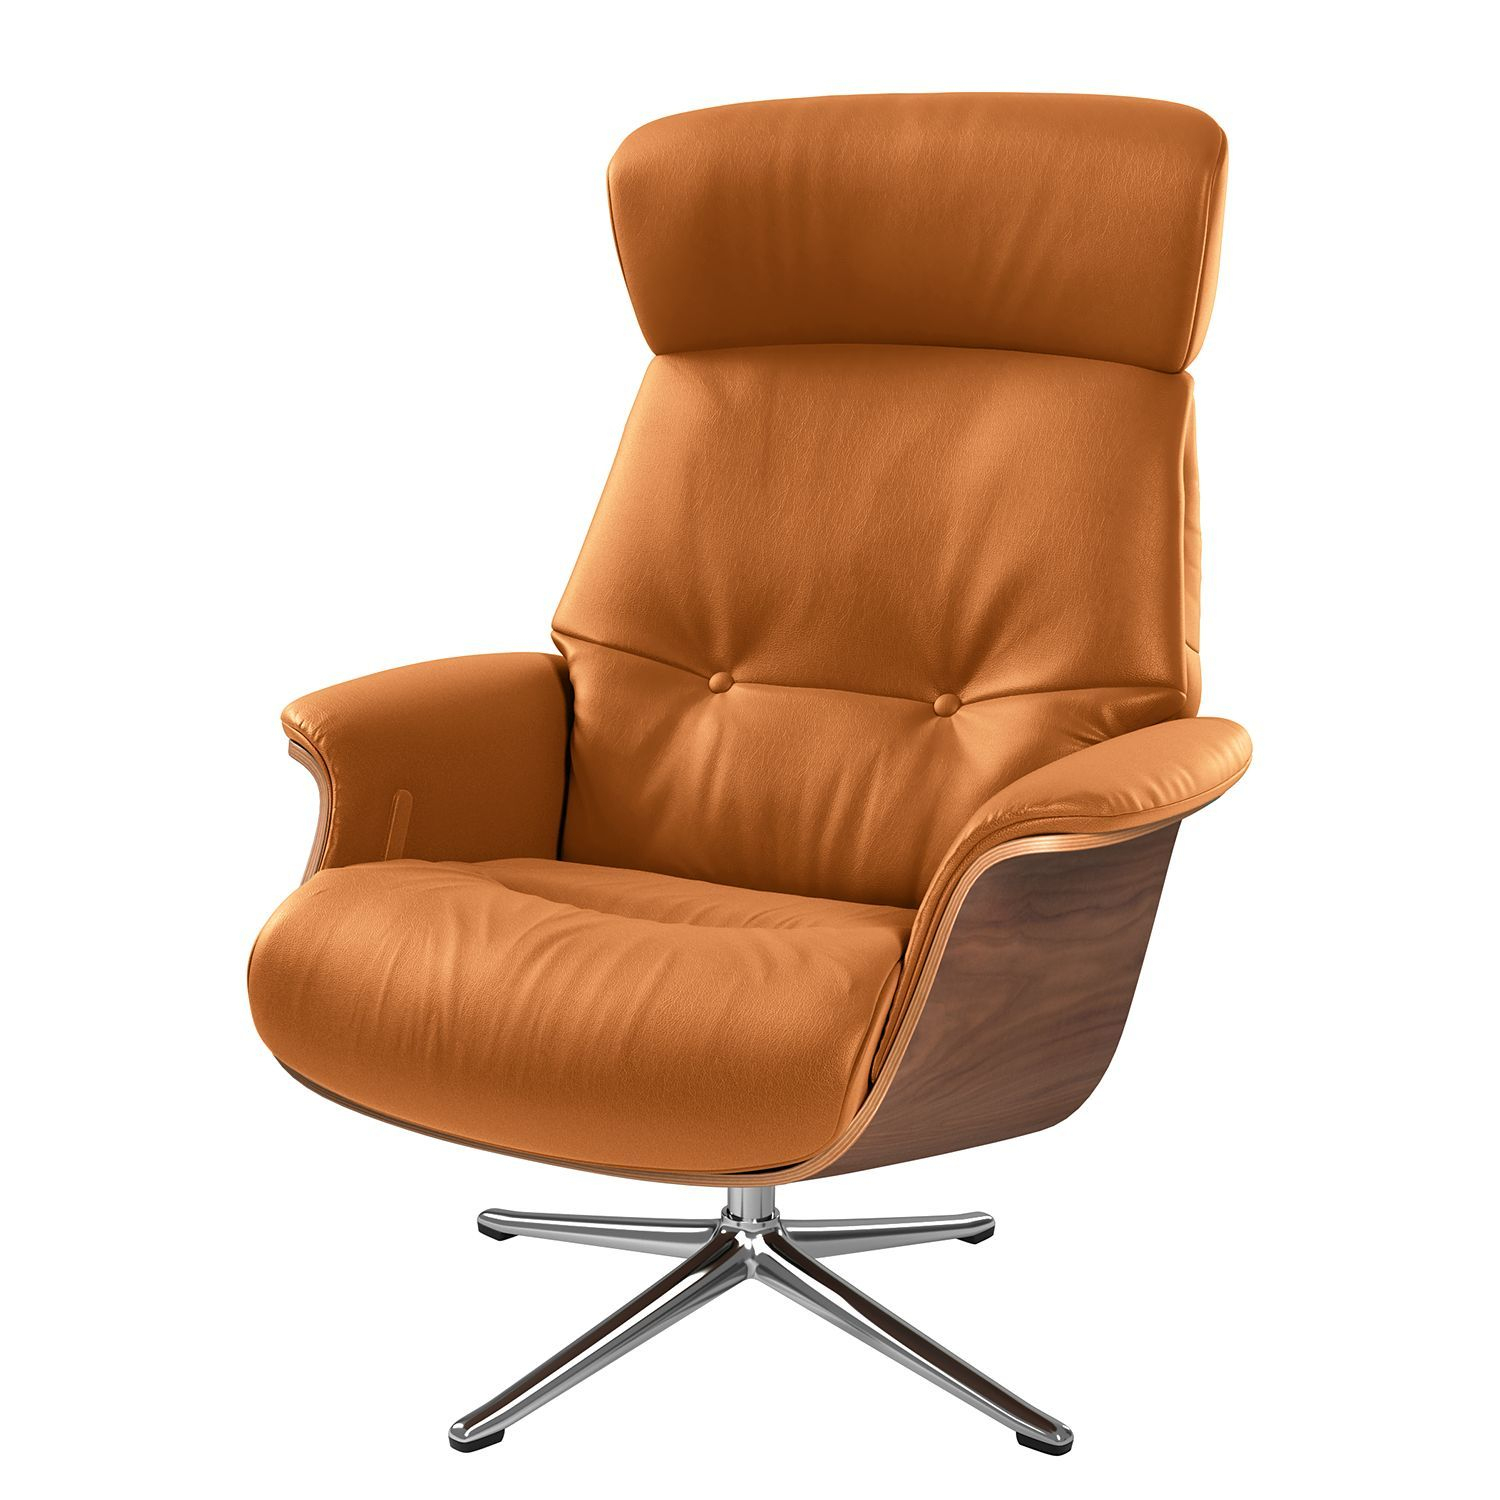 Fauteuil Relax Anderson I In 2020 | Sessel, Fernsehsessel ... concernant Fauteuil Relax Anderson